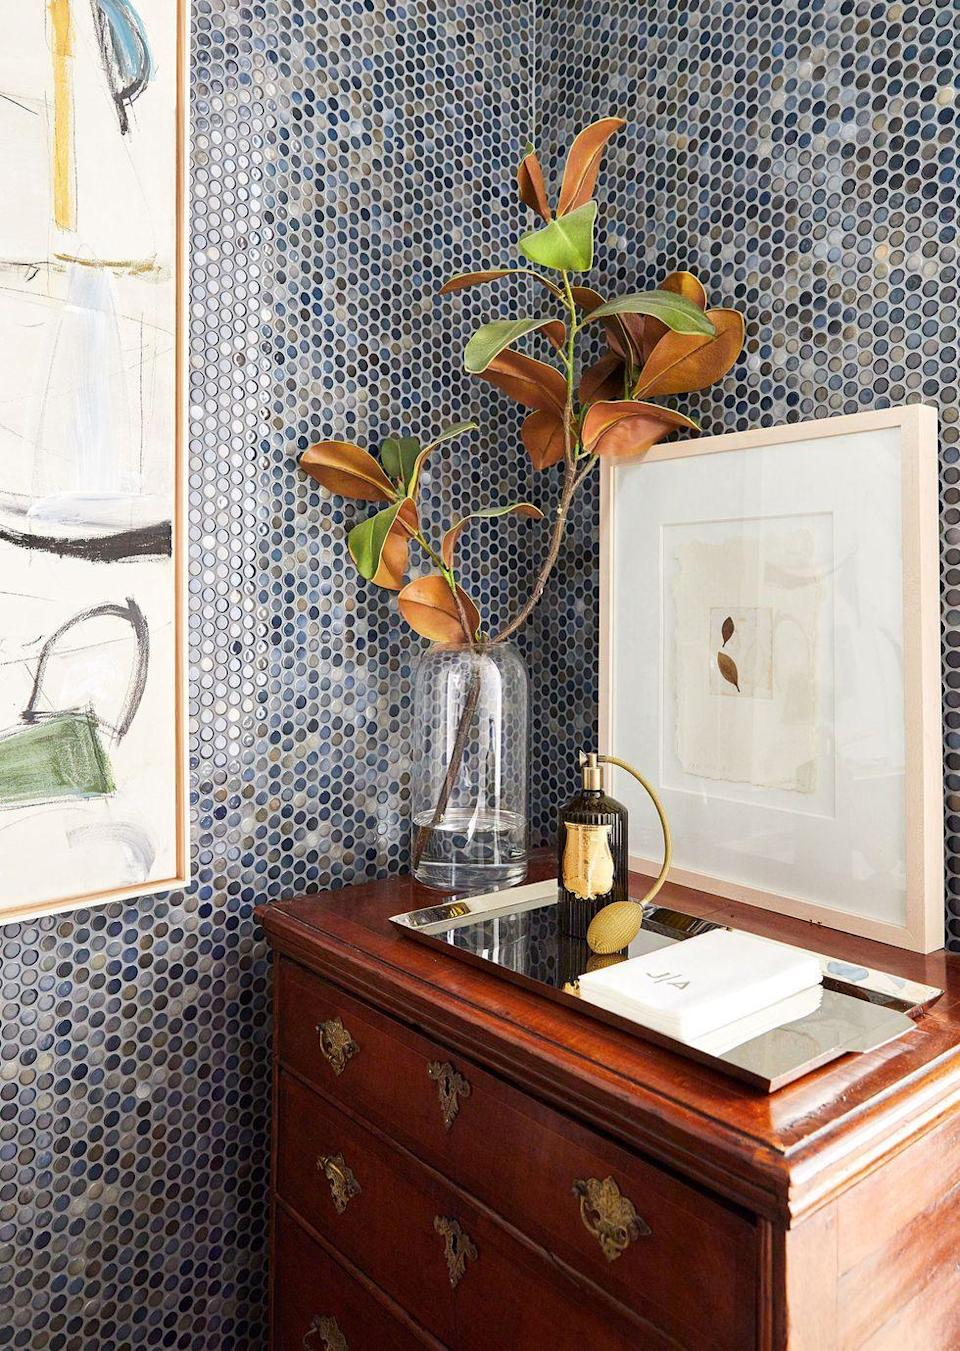 """<p>This small but mighty <a href=""""https://www.elledecor.com/design-decorate/house-interiors/a35386270/augusta-hoffman-east-village-apartment/"""" rel=""""nofollow noopener"""" target=""""_blank"""" data-ylk=""""slk:powder room"""" class=""""link rapid-noclick-resp"""">powder room</a> shows a vintage dresser topped with a framed artwork of tiny leaves and a single magnolia branch. </p>"""